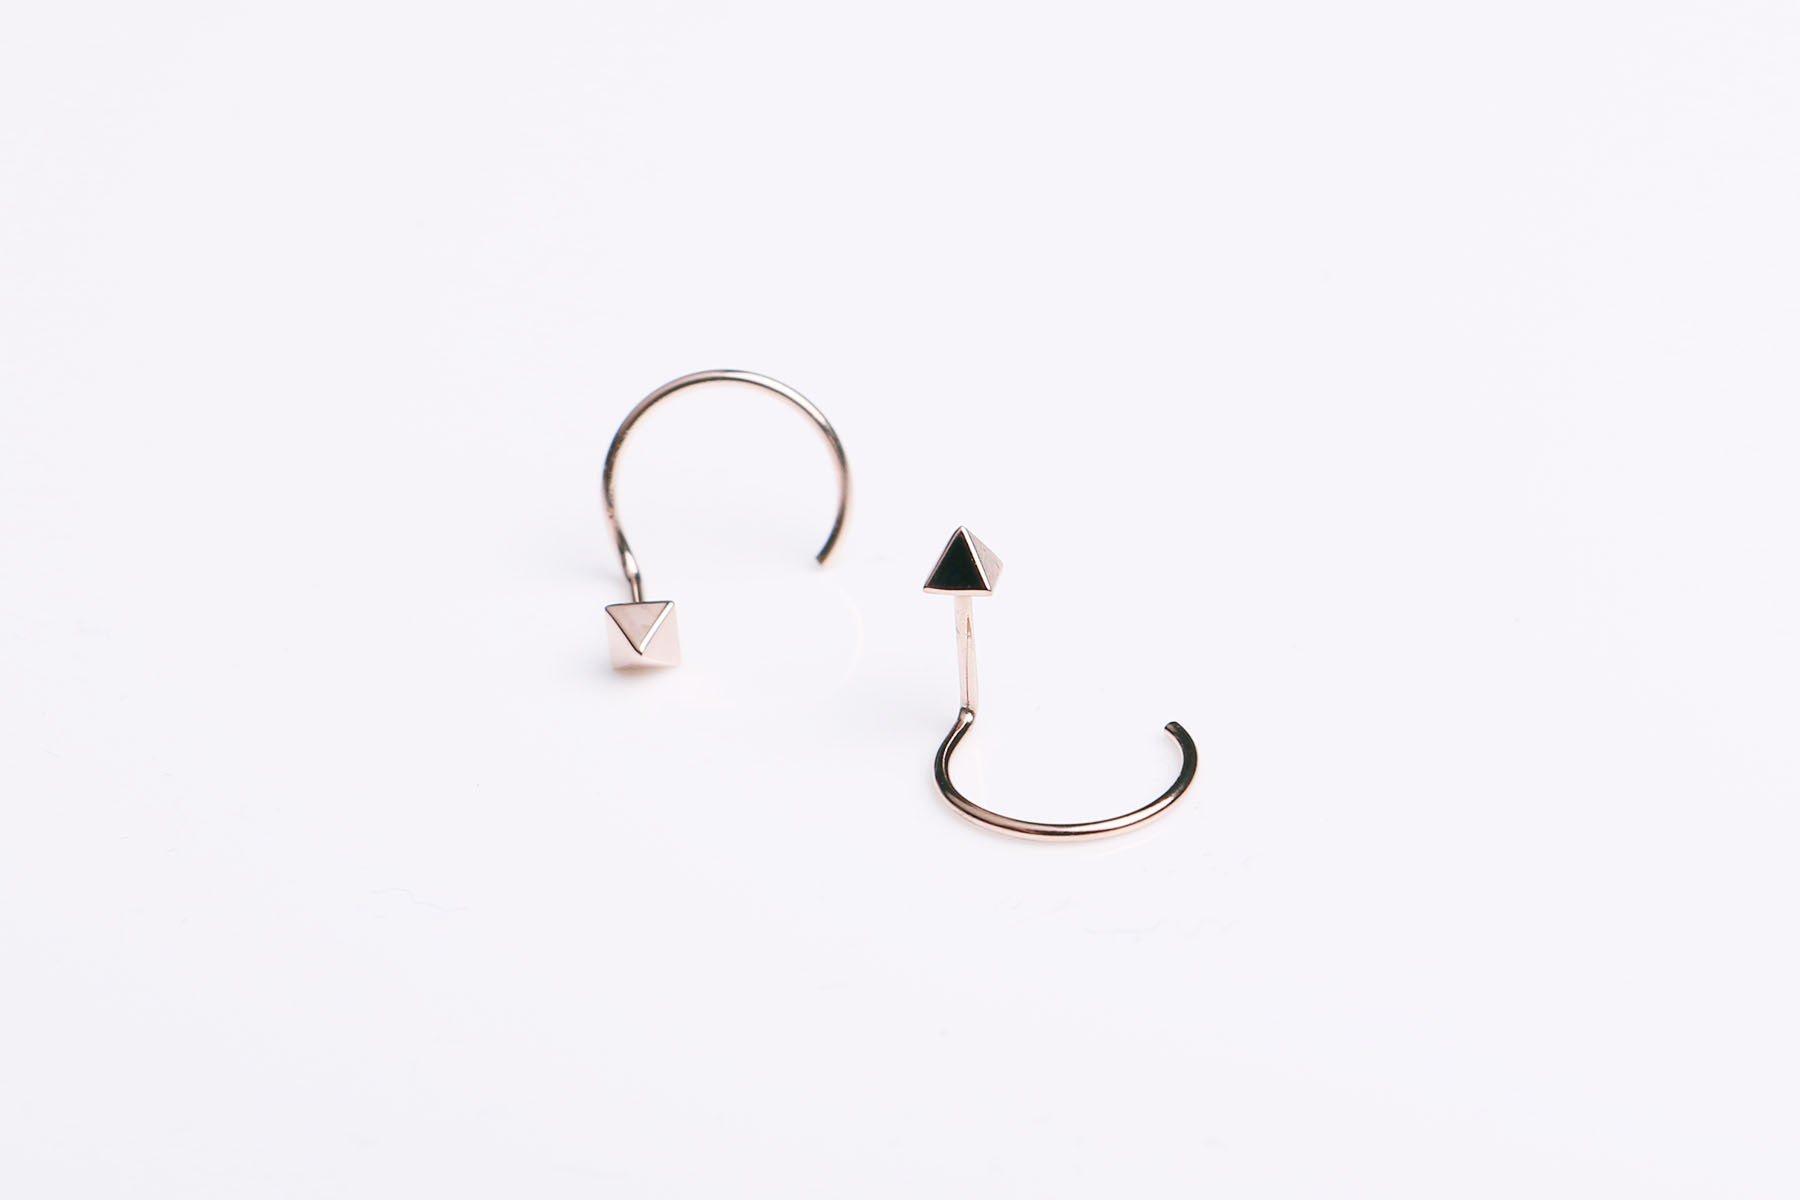 PYRAMID MOON - Jewelry | Unyé Design